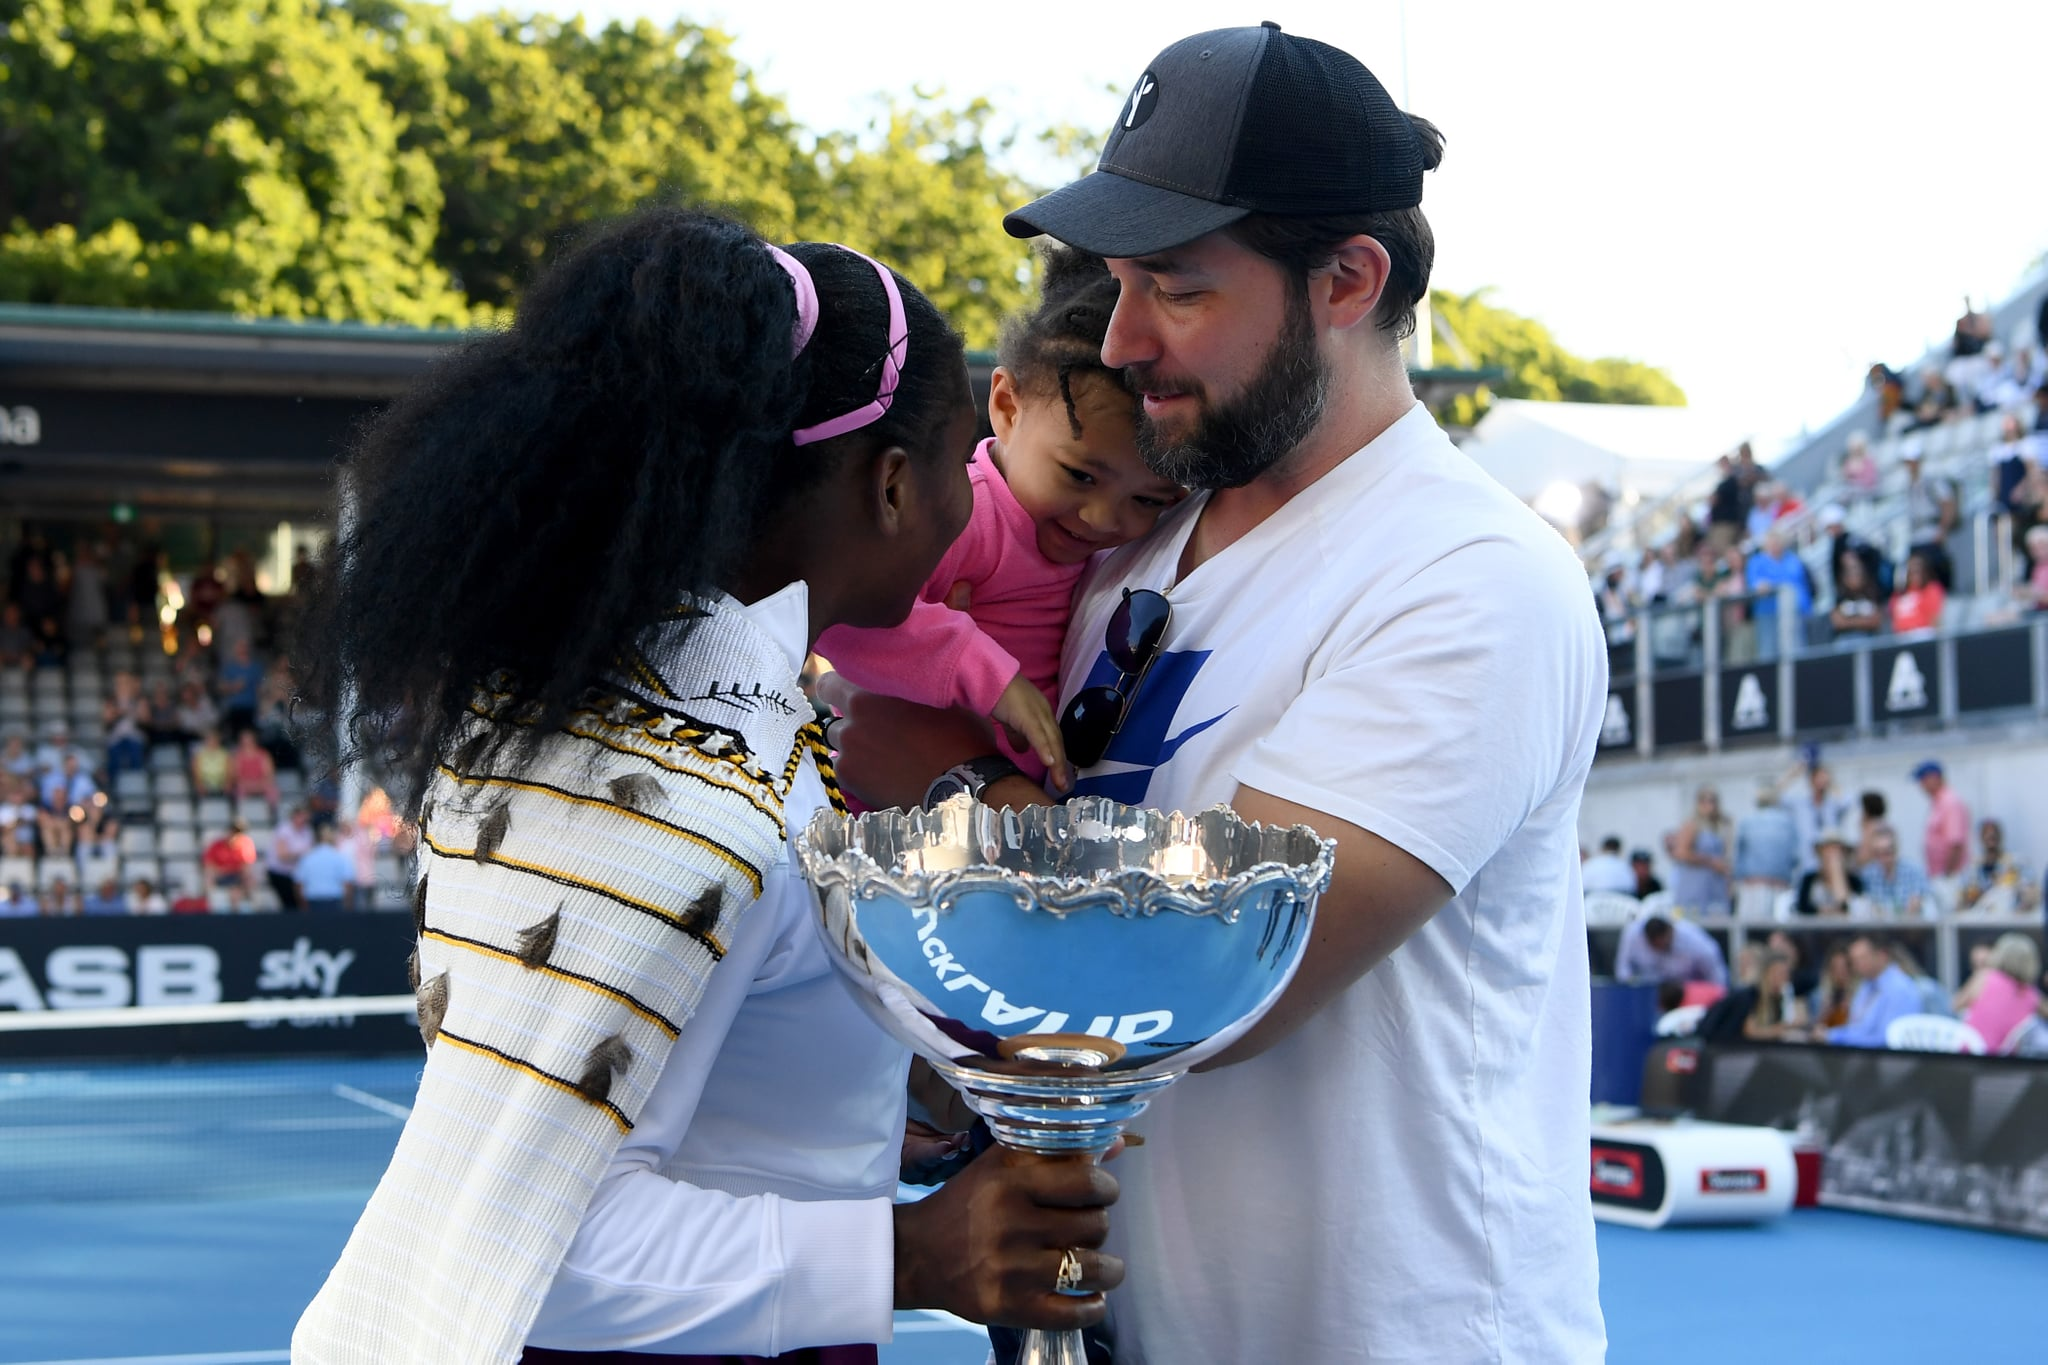 AUCKLAND, NEW ZEALAND - JANUARY 12: Alexis Olympia, daughter of Serena Williams and husband Alexis Ohanian congratulate Serena Williams after she won her final match against Jessica Pegula of USA at ASB Tennis Centre on January 12, 2020 in Auckland, New Zealand. (Photo by Hannah Peters/Getty Images)